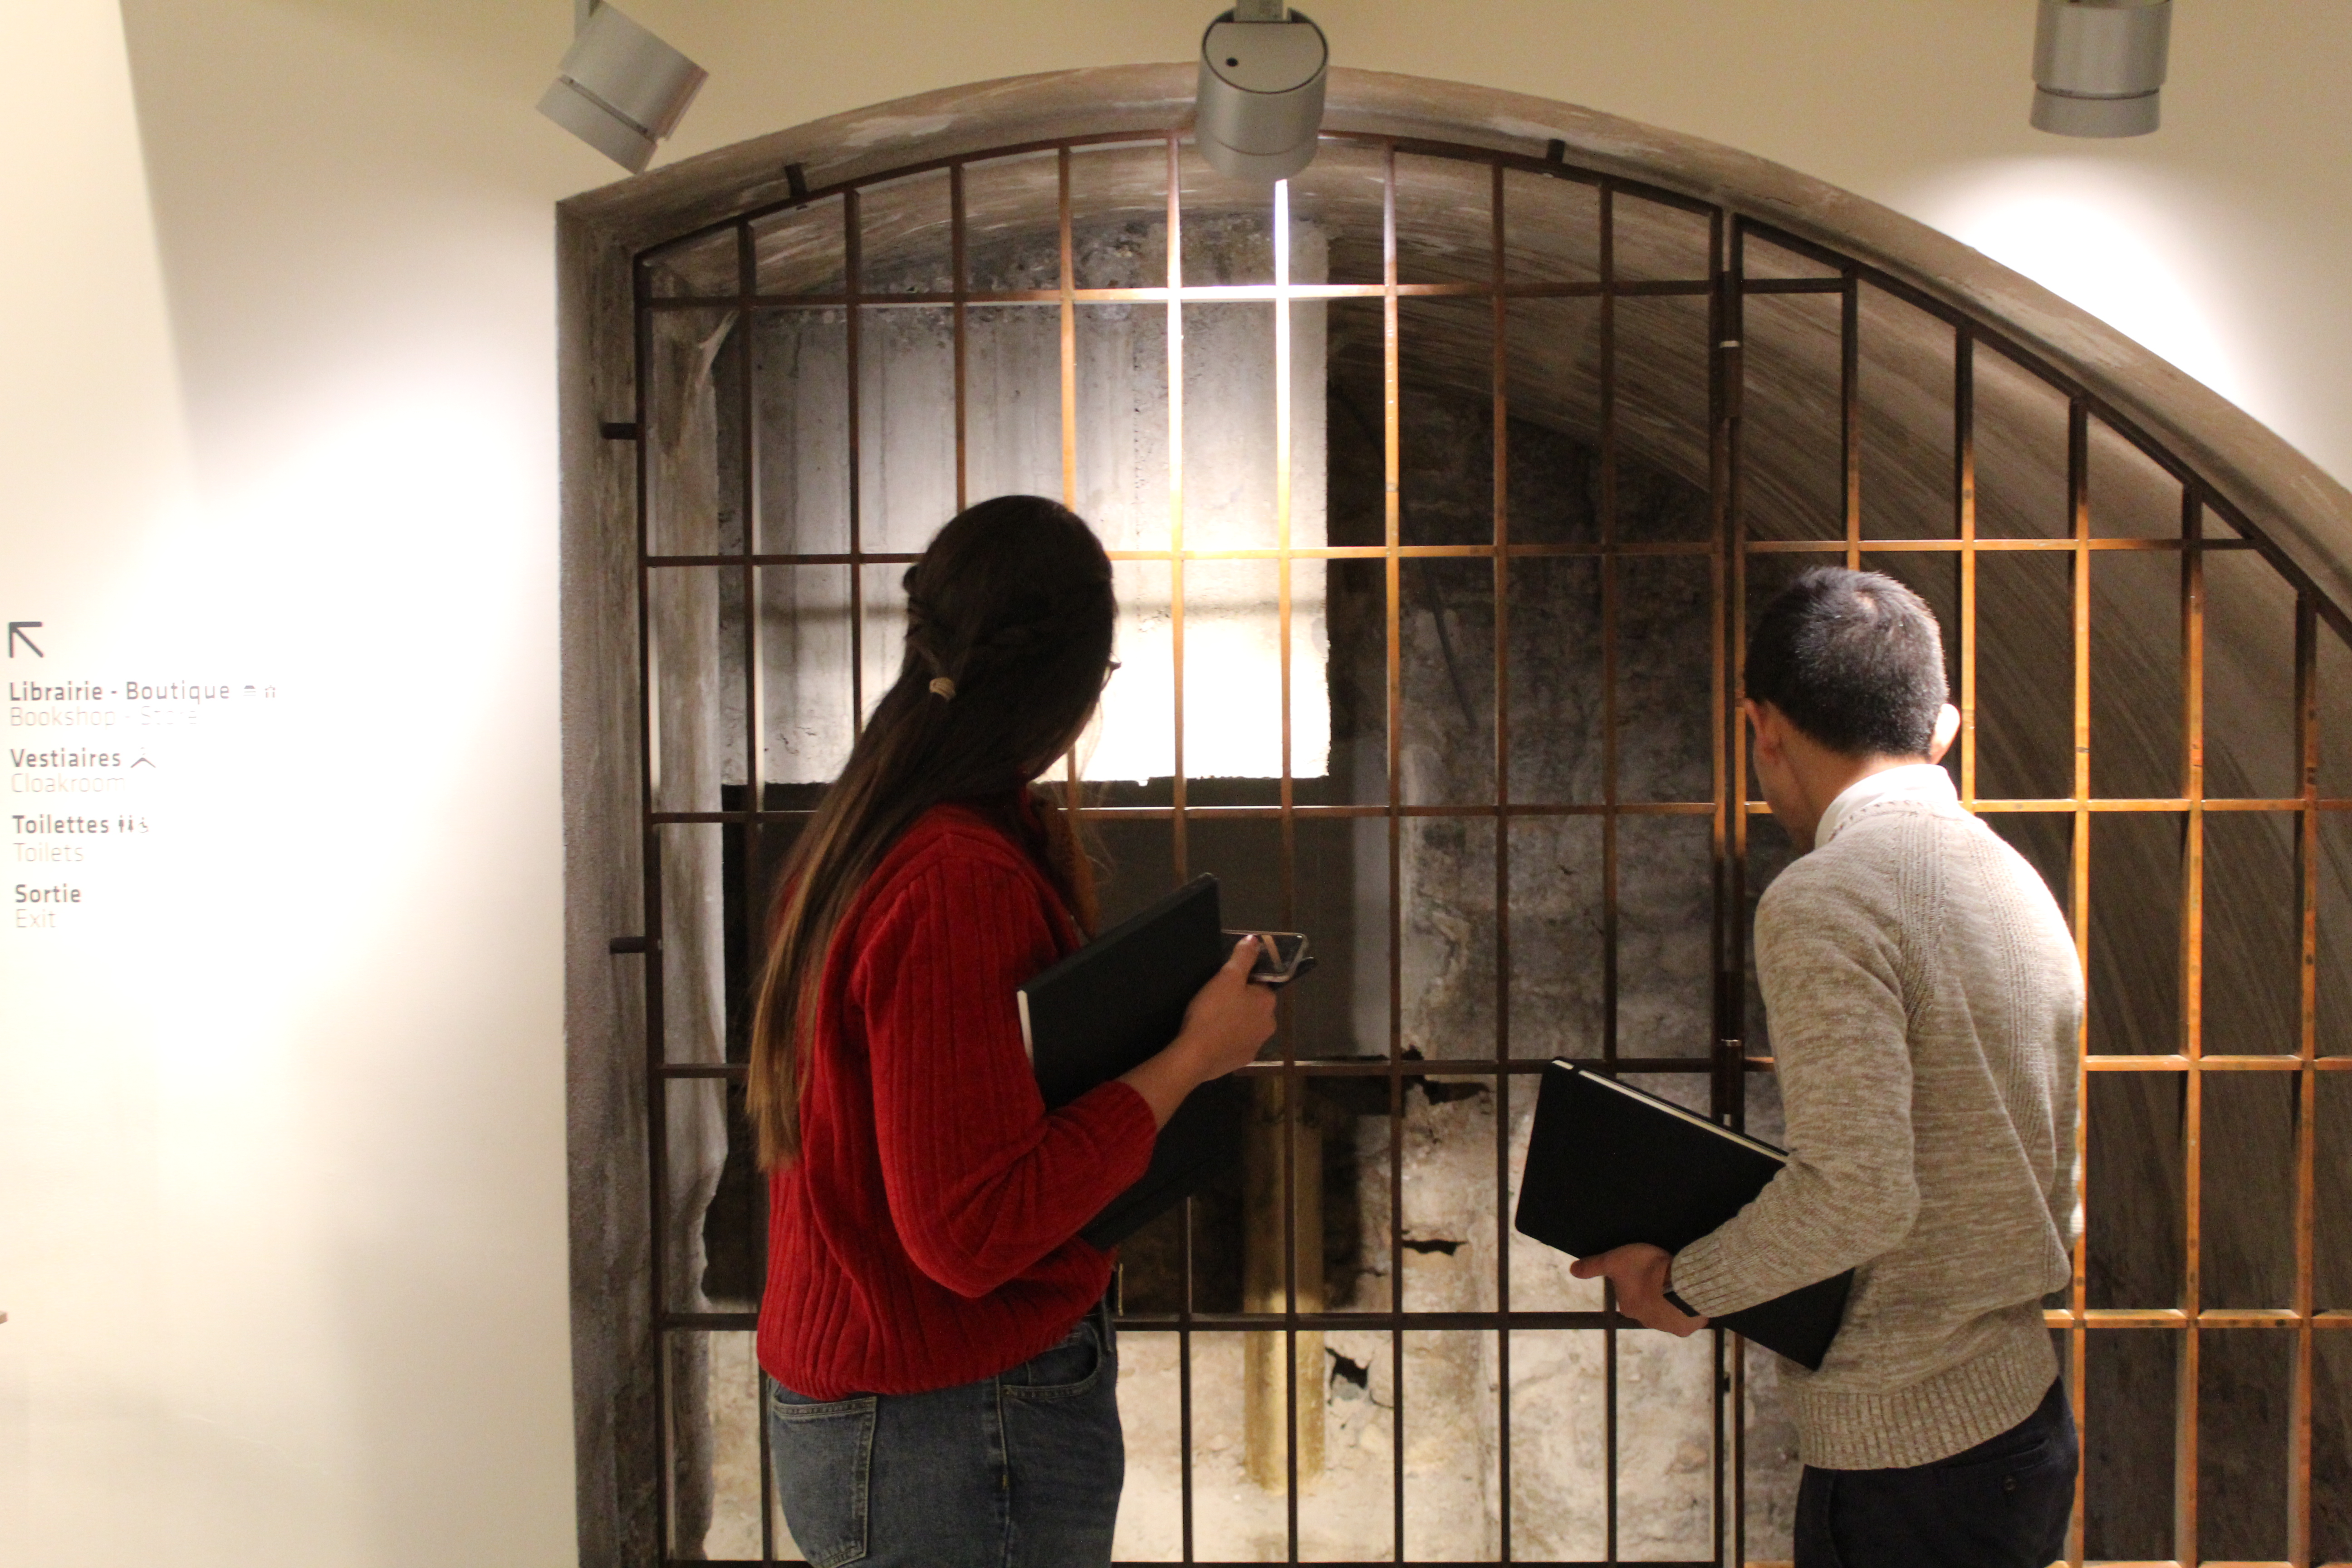 Two people looking through bars of a cage door.